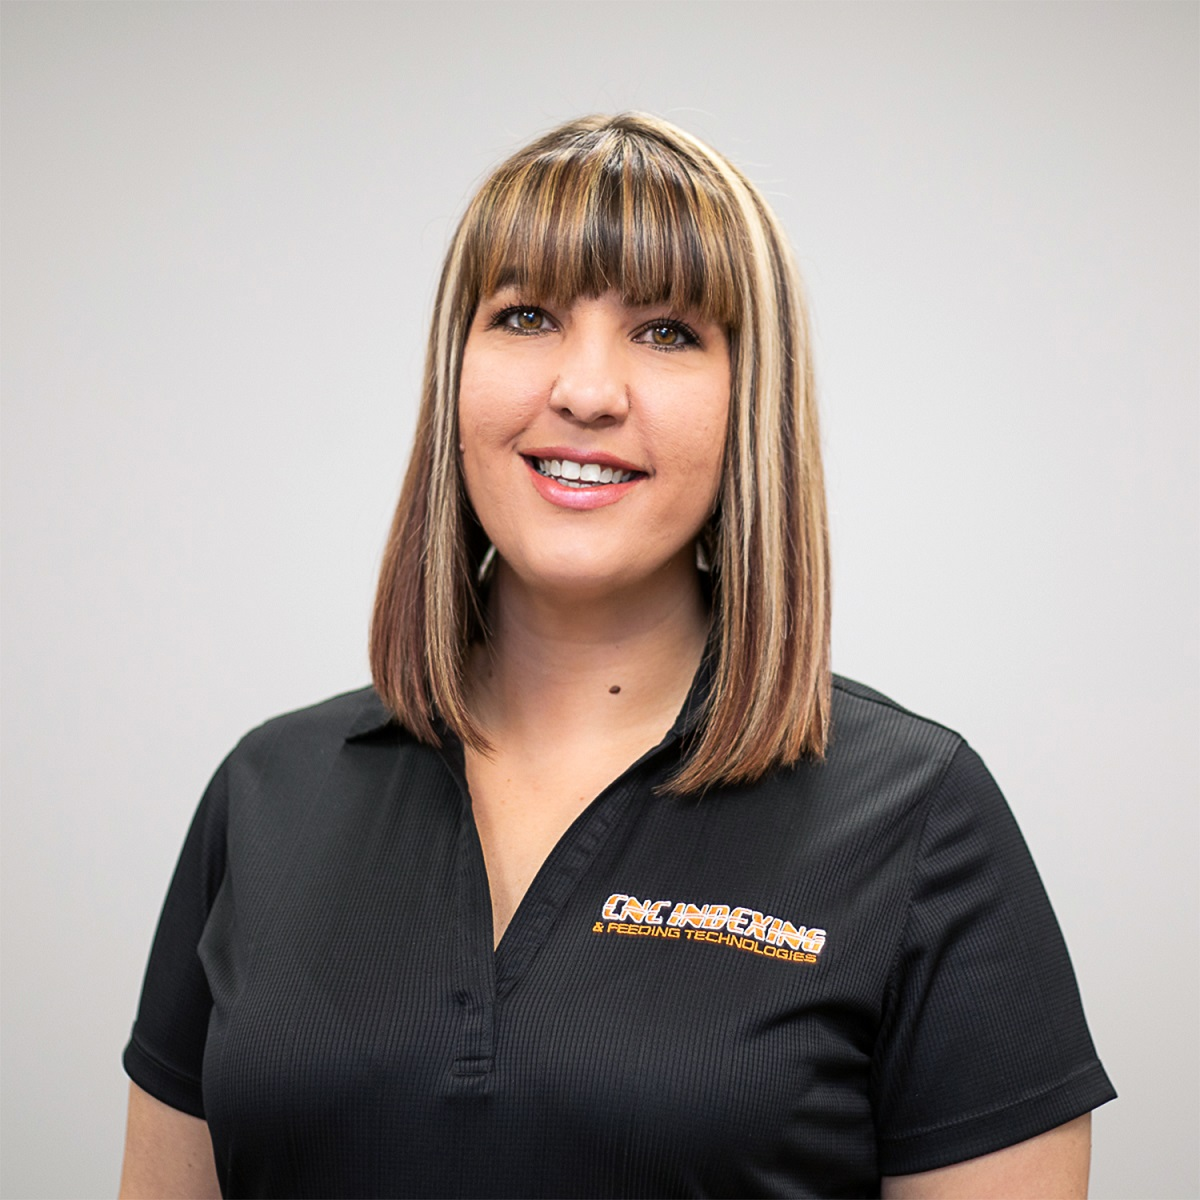 Jessica Presutto named to Production Machining Magazine list of 2019 Emerging Leaders